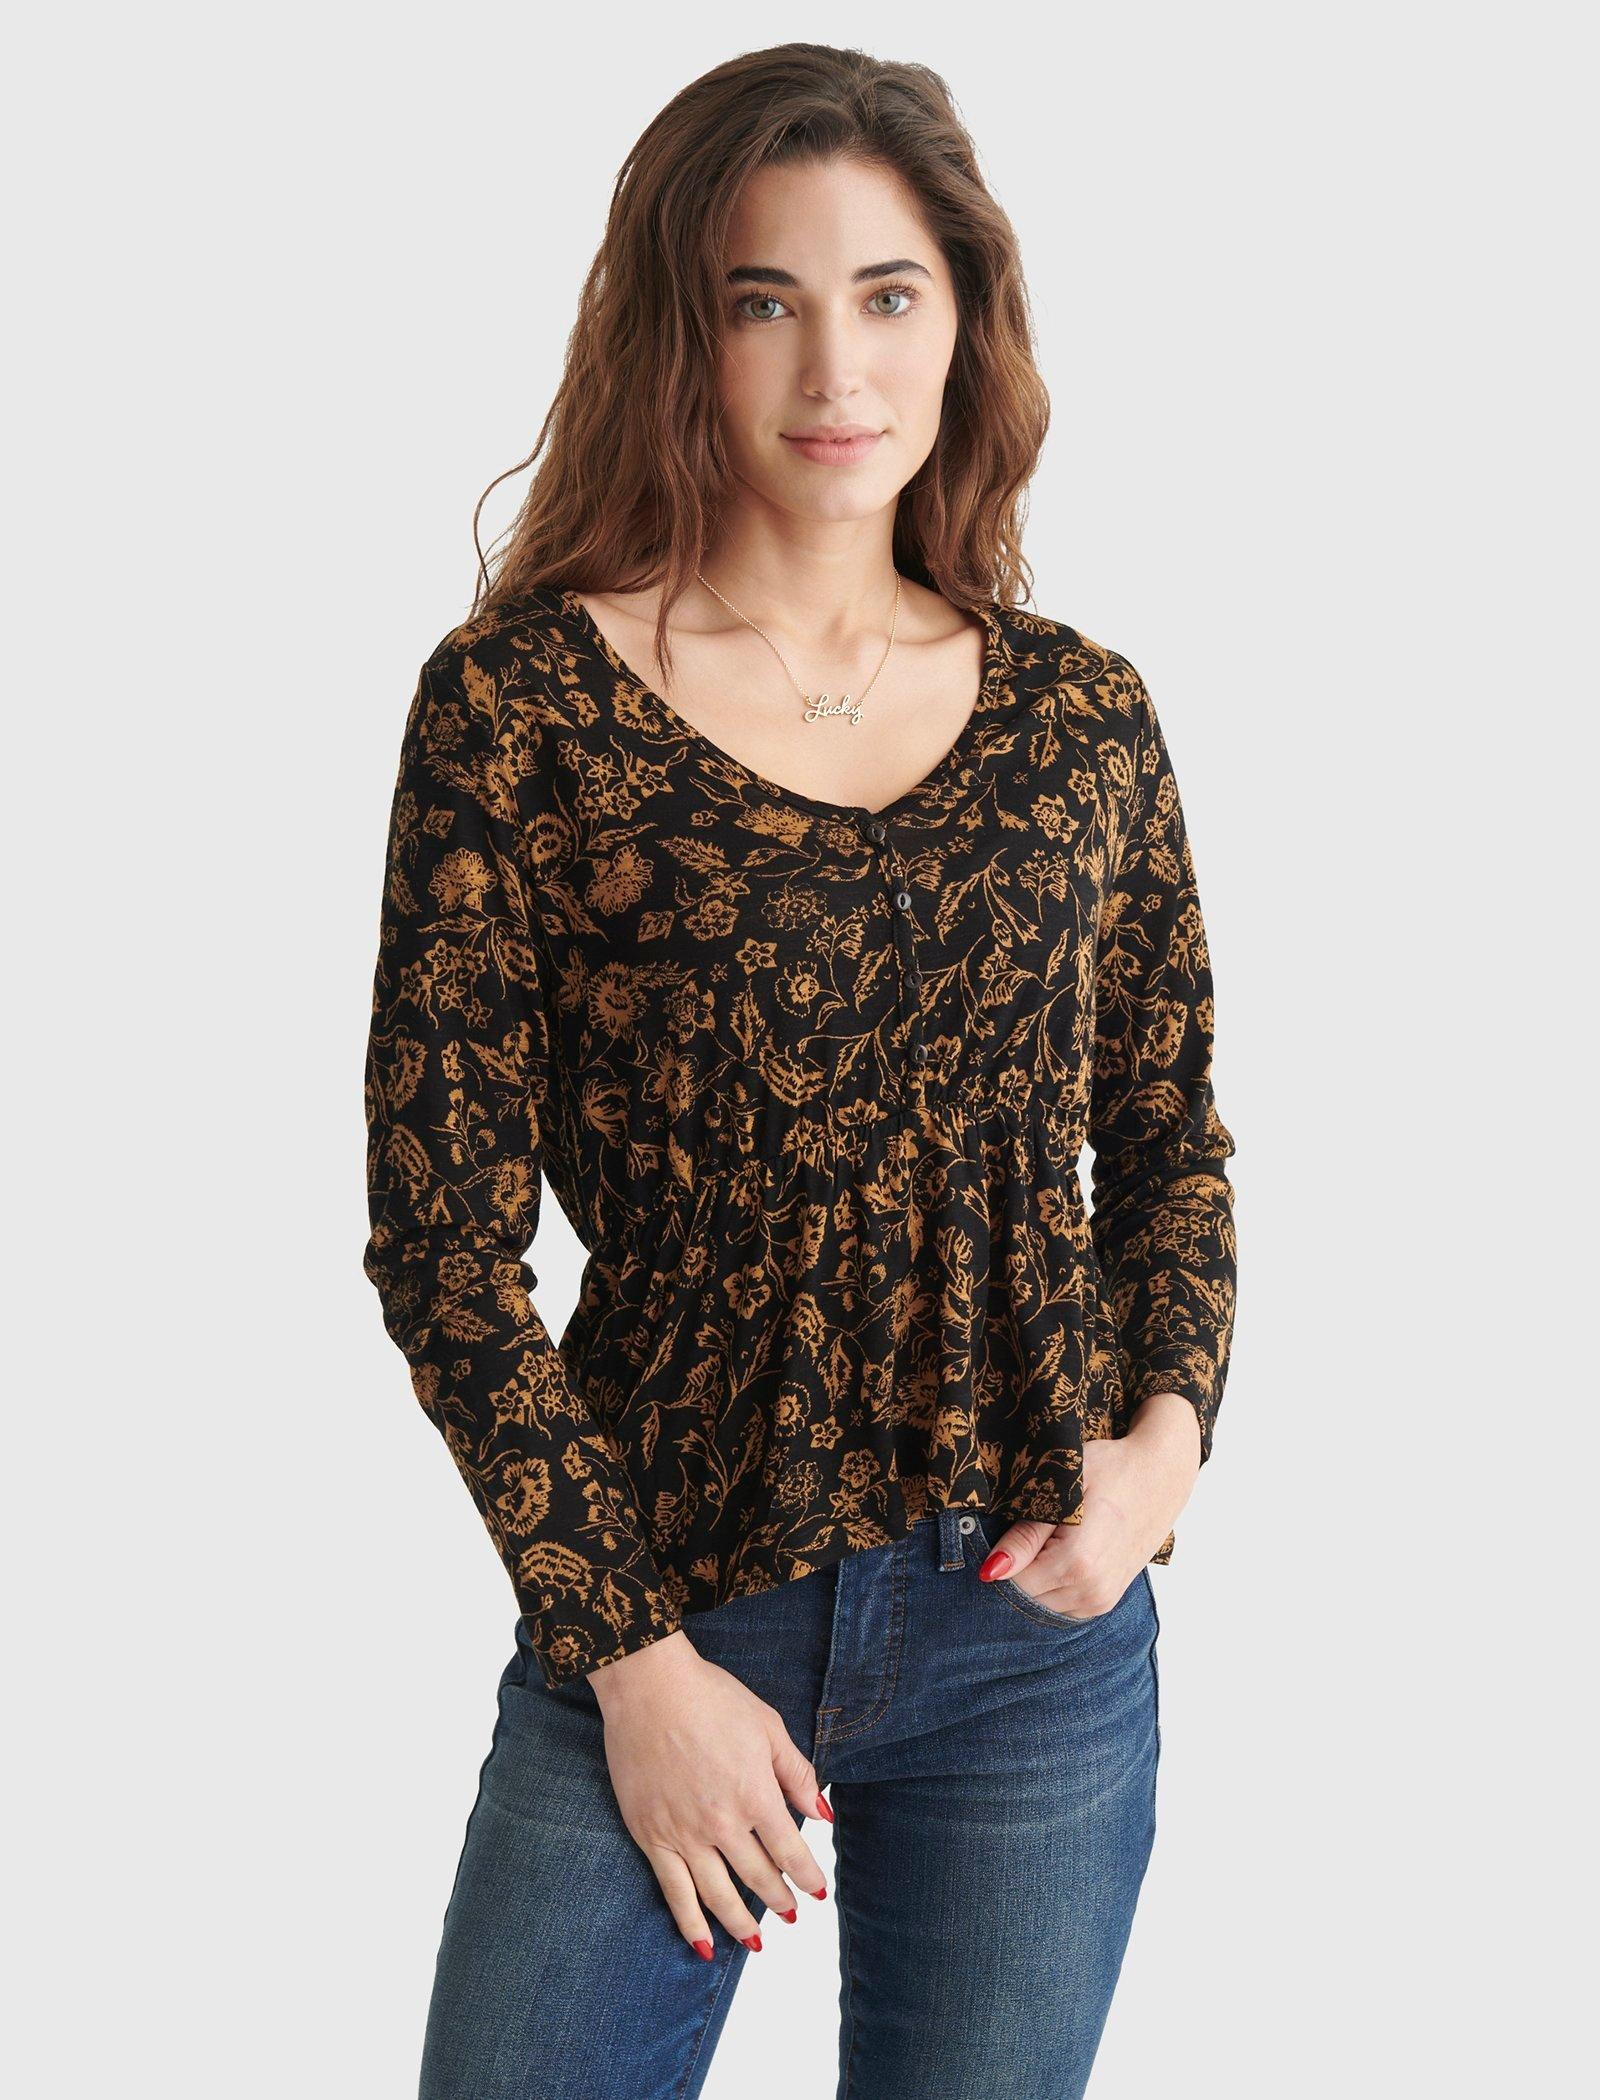 RELAXED-FIT PEPLUM V-NECK TOP, image 1